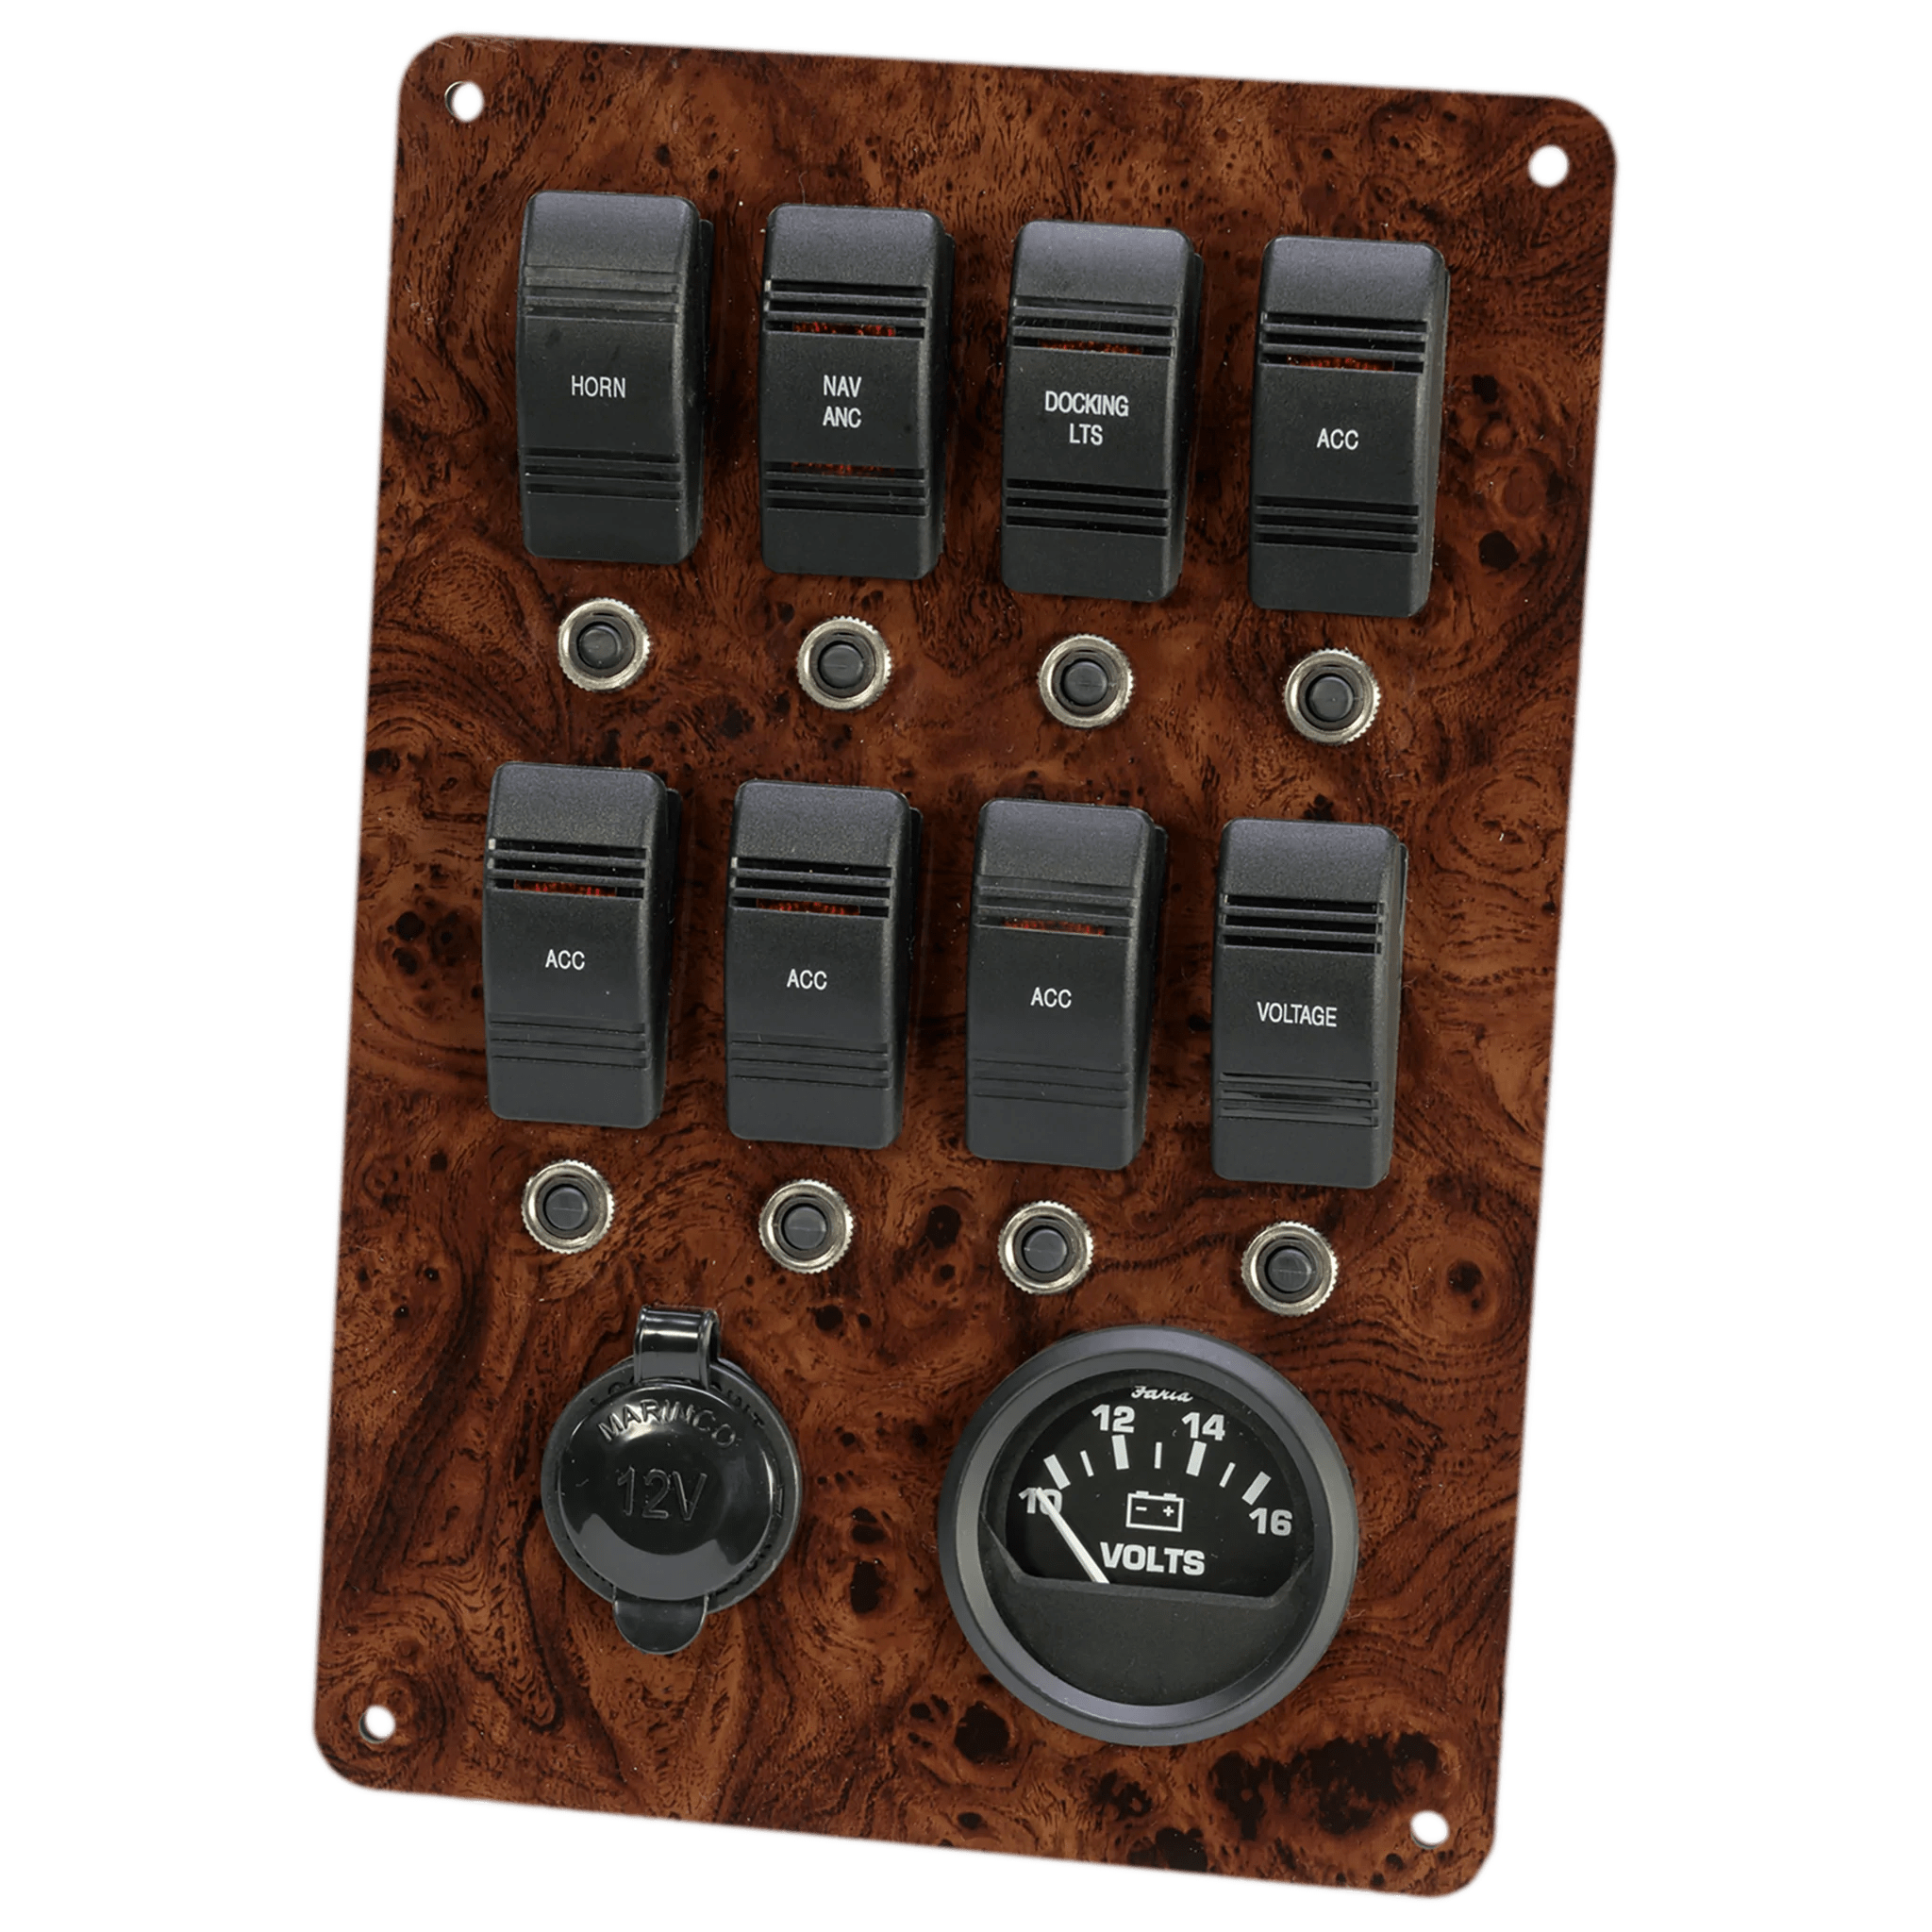 medium resolution of fully wired fused and loaded switch panel with 12 volt outlet and battery meter description plugs directly into our pontoon boat wiring harness